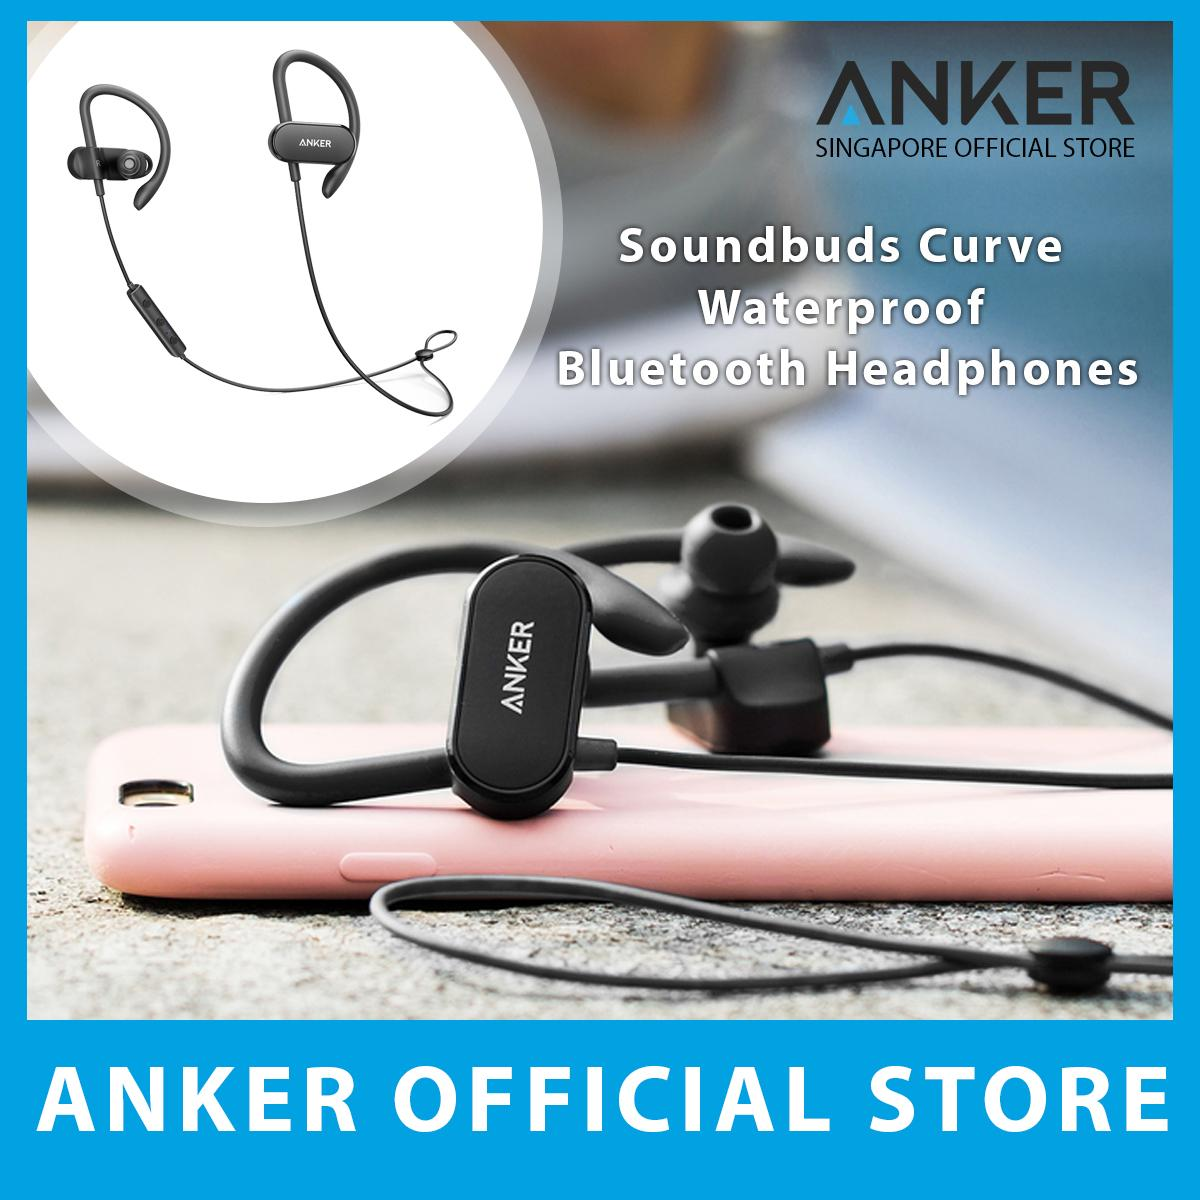 Compare Price Anker Soundbuds Curve Waterproof Bluetooth Headphones Anker On Singapore